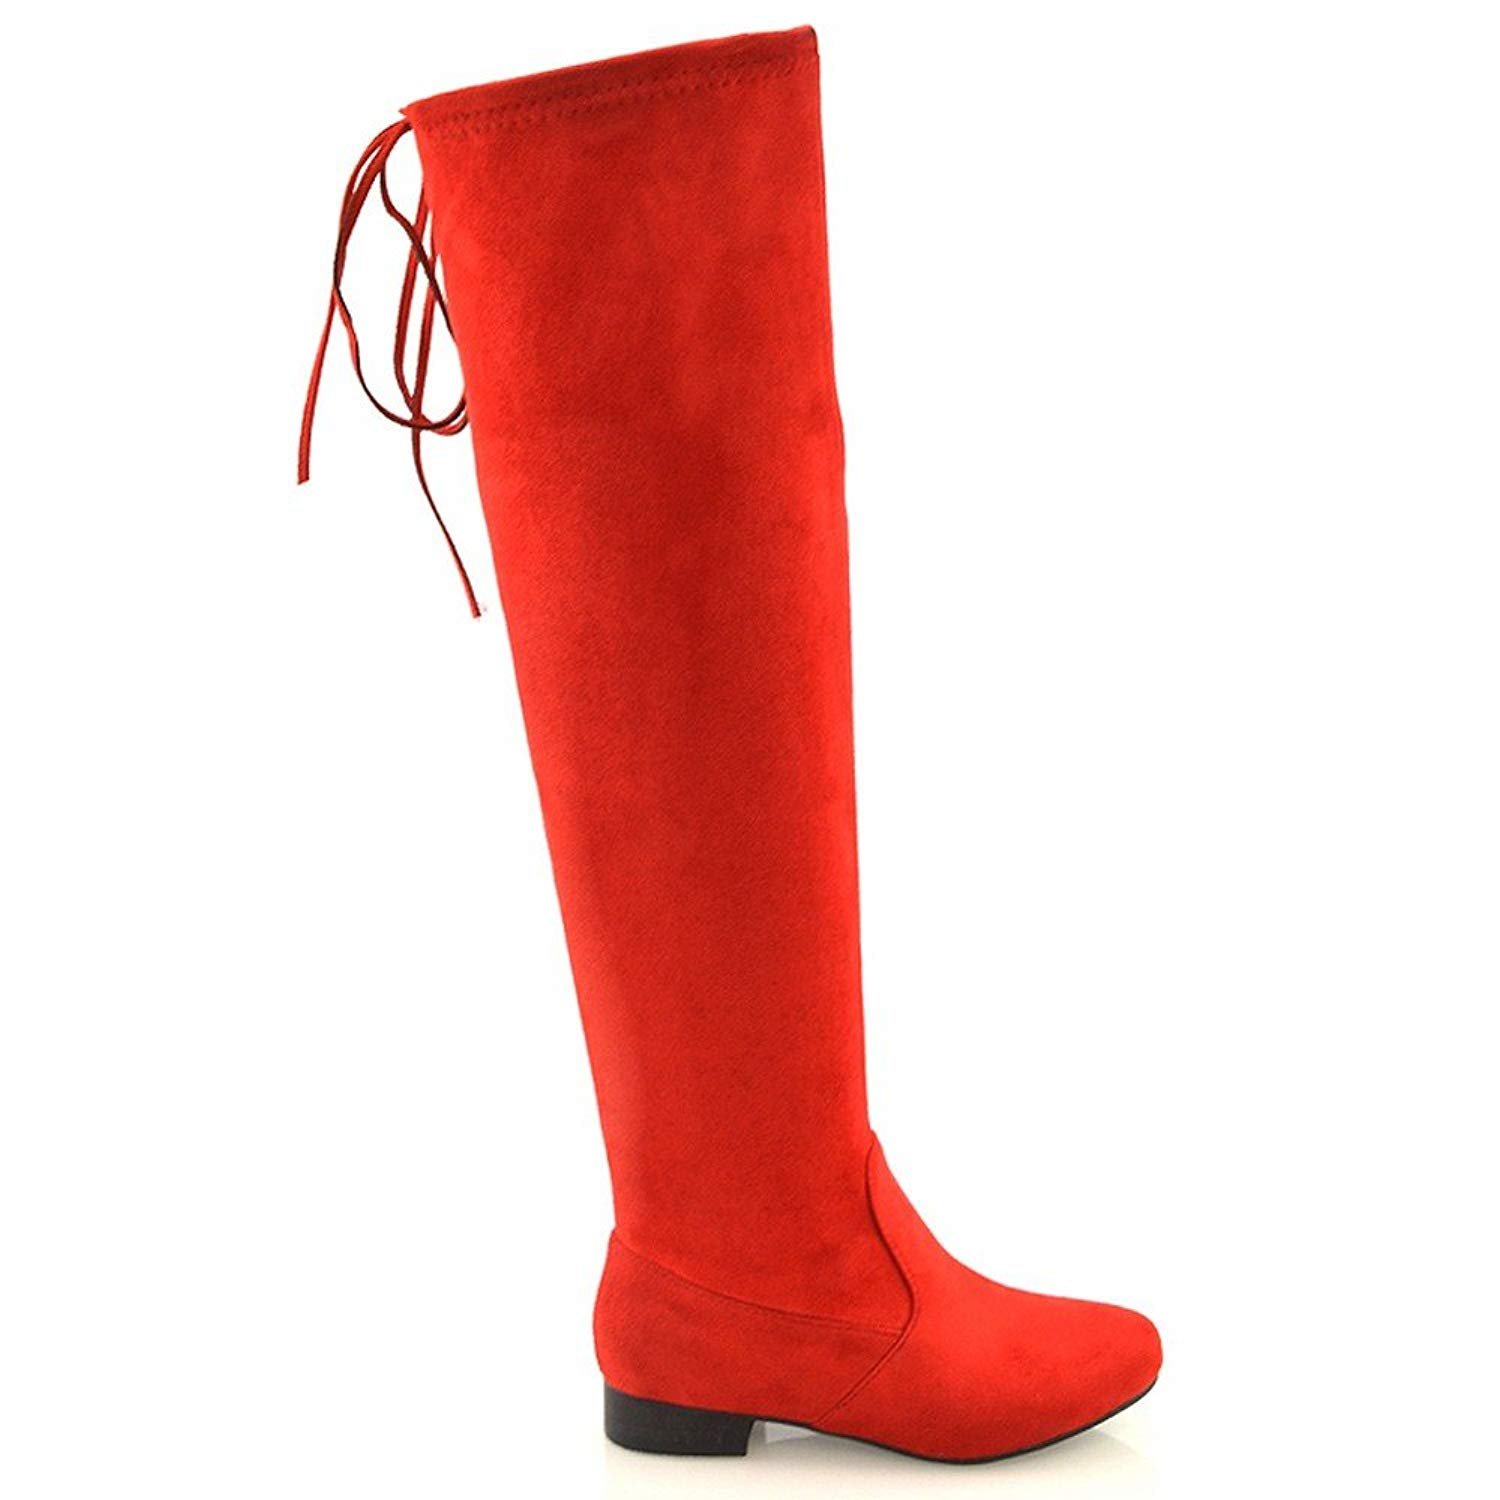 403784e440c Get Quotations · ESSEX GLAM Womens Over The Knee Boots Tie Up Flat Lace Zipper  Stretch Boots